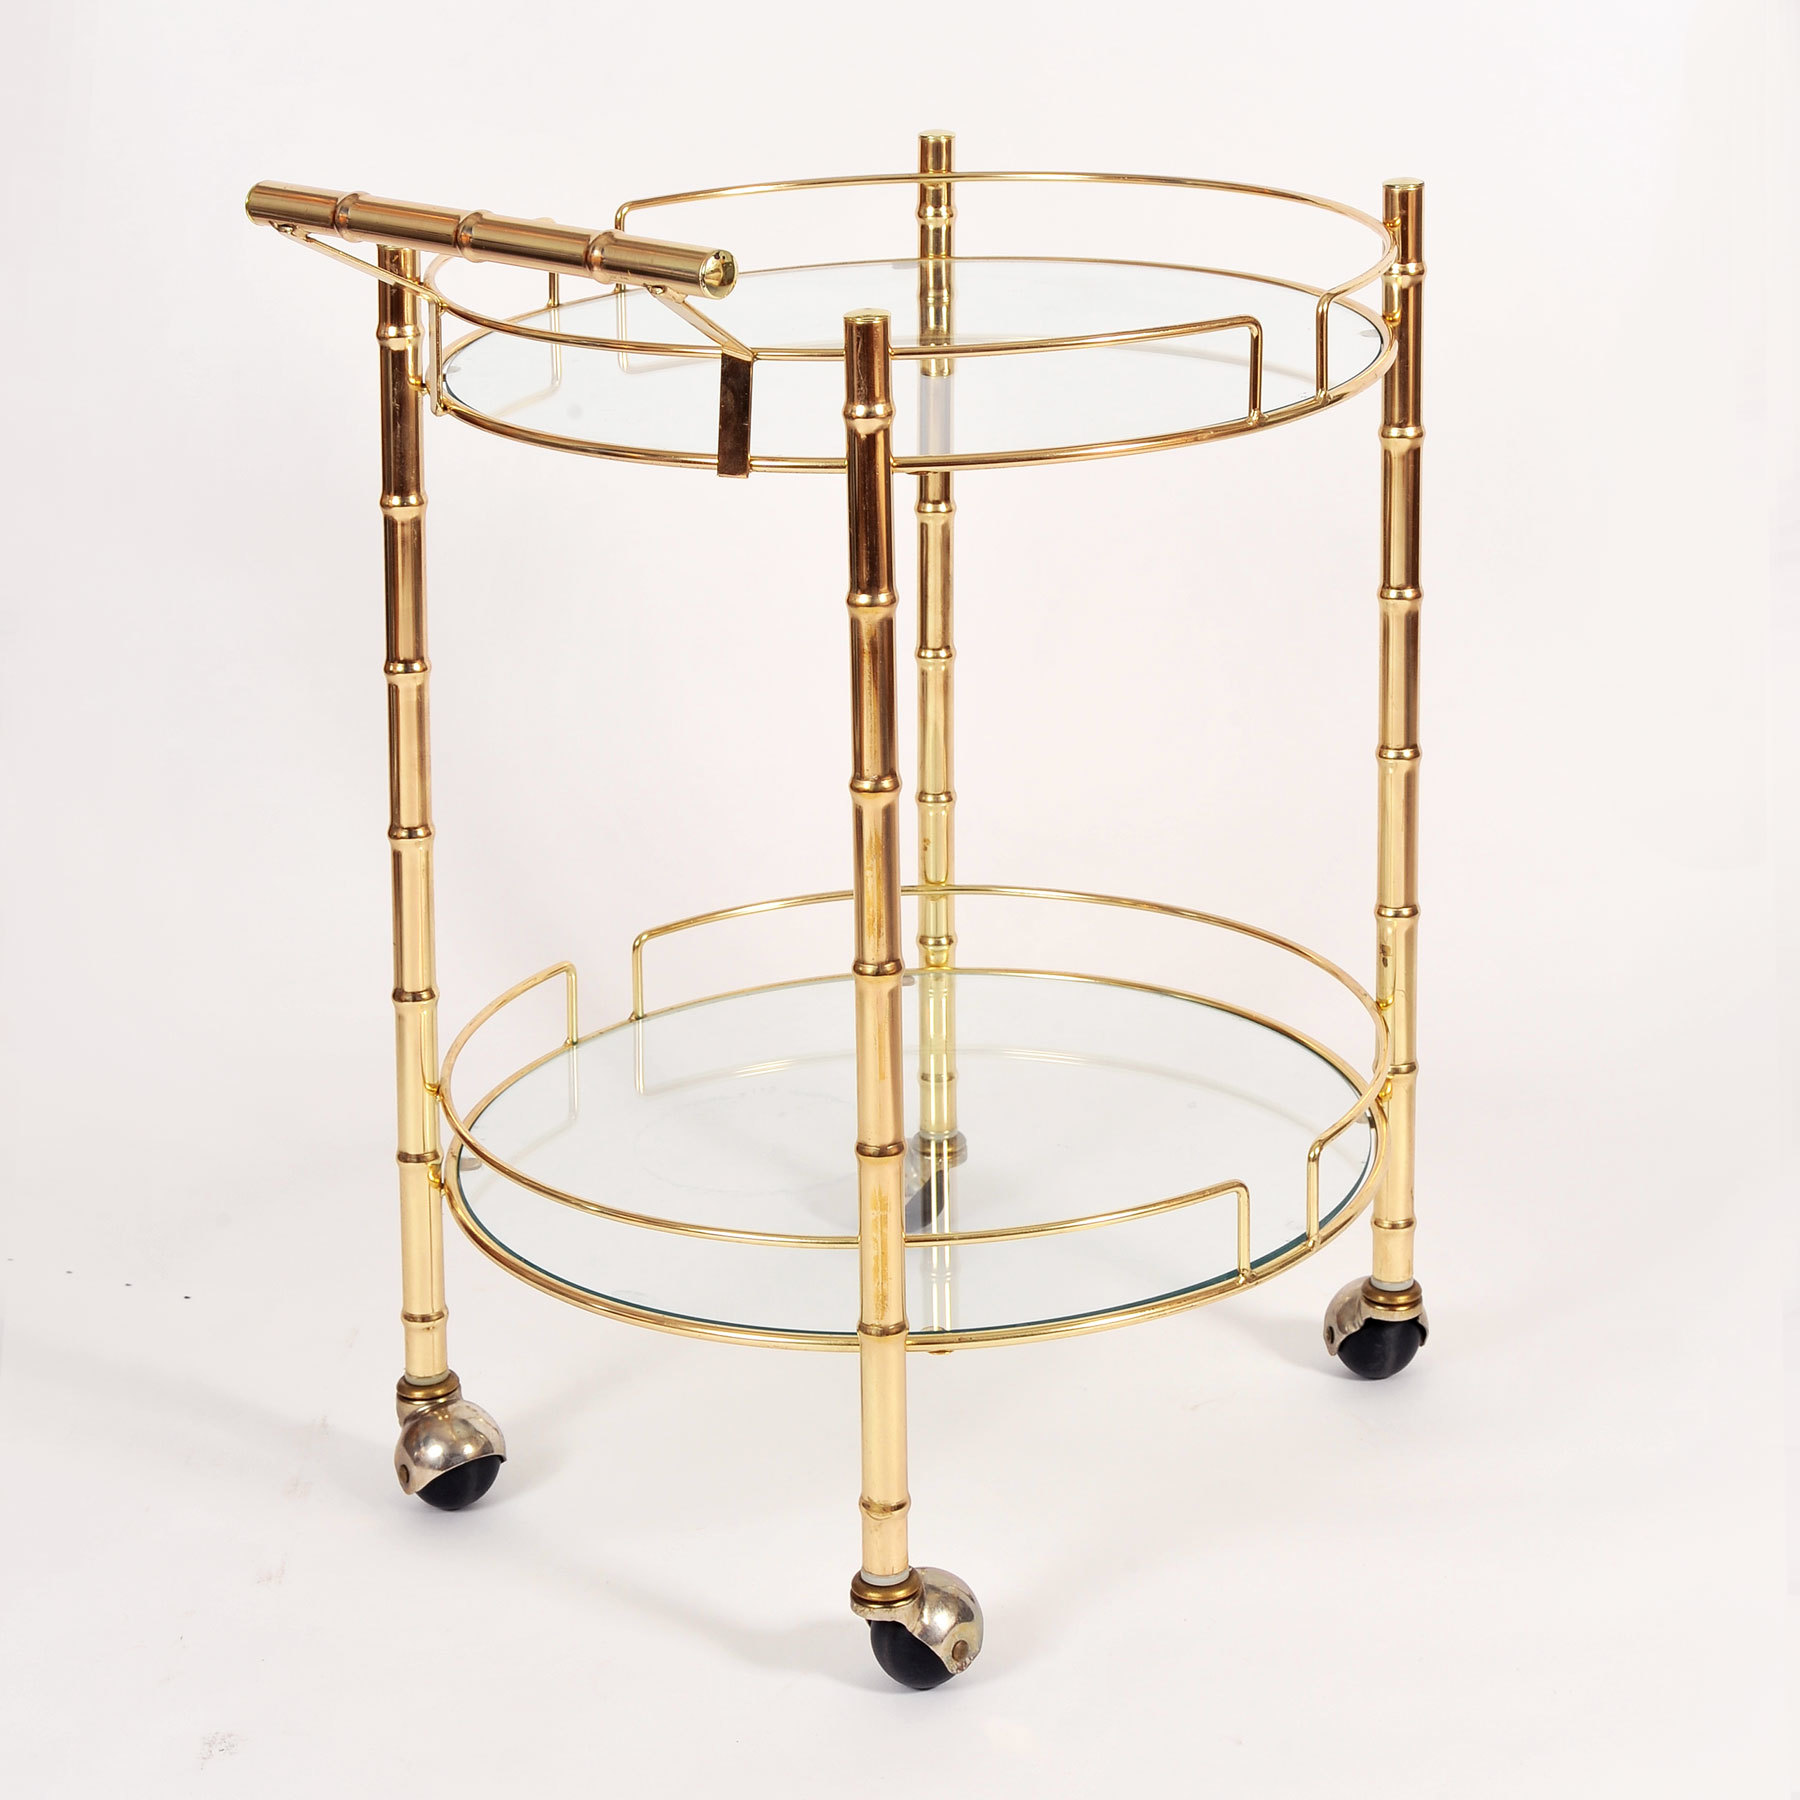 The image for Circular Brass Trolley 03